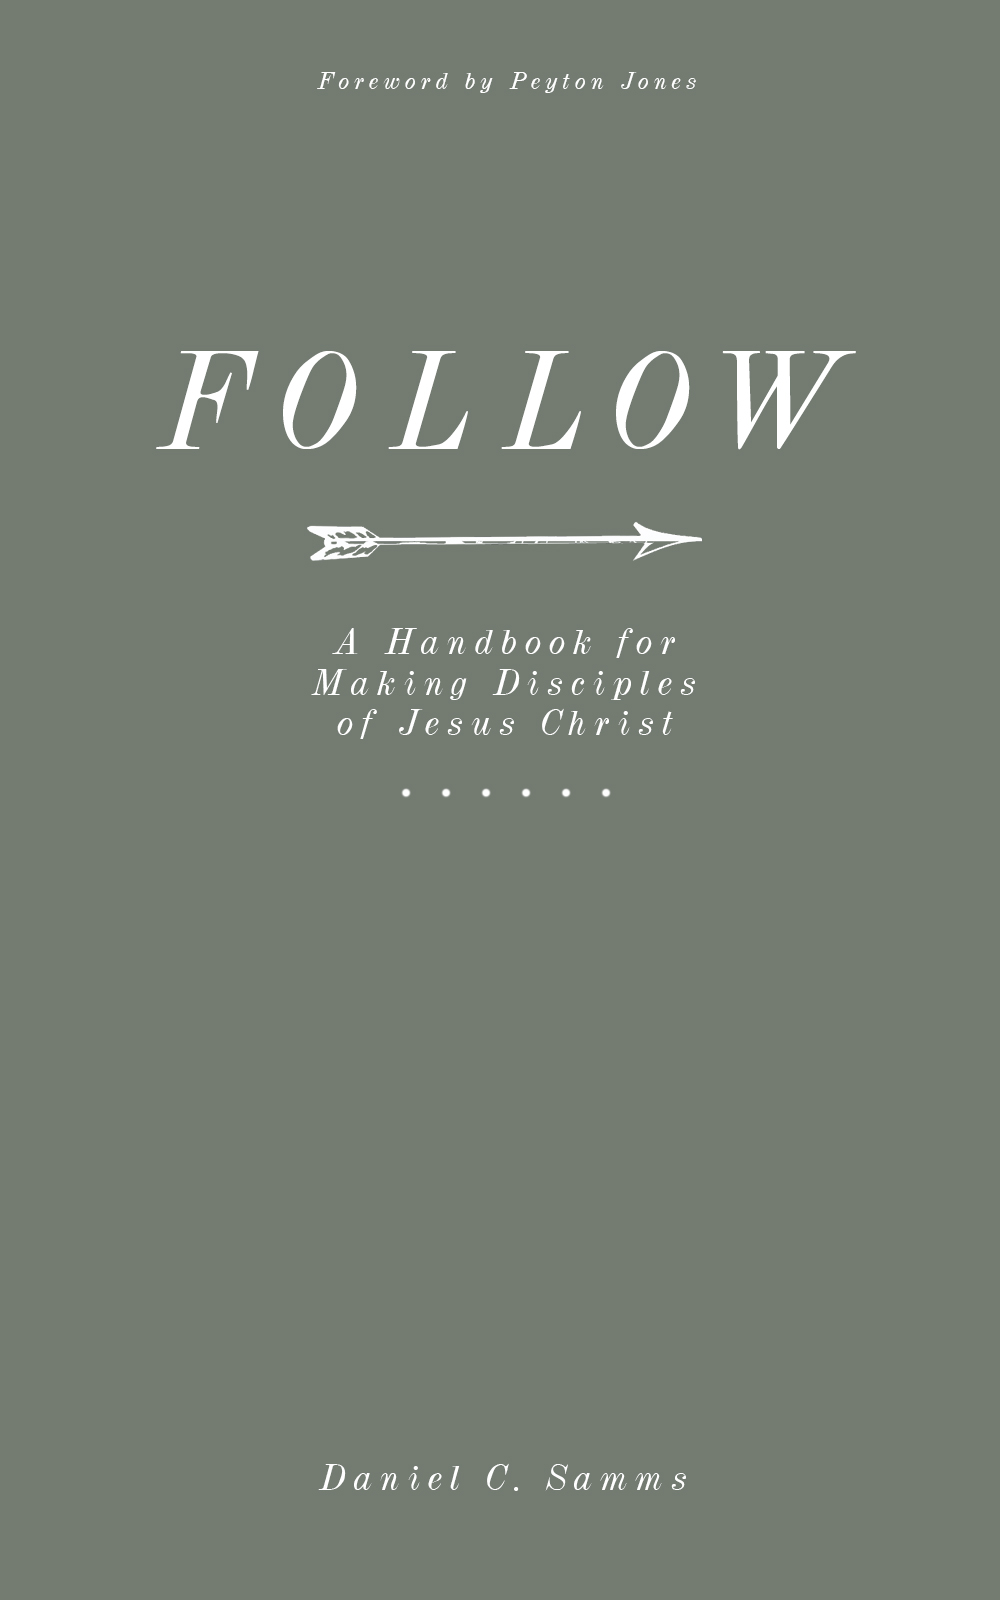 Follow is available on Amazon.com  for $2.99.